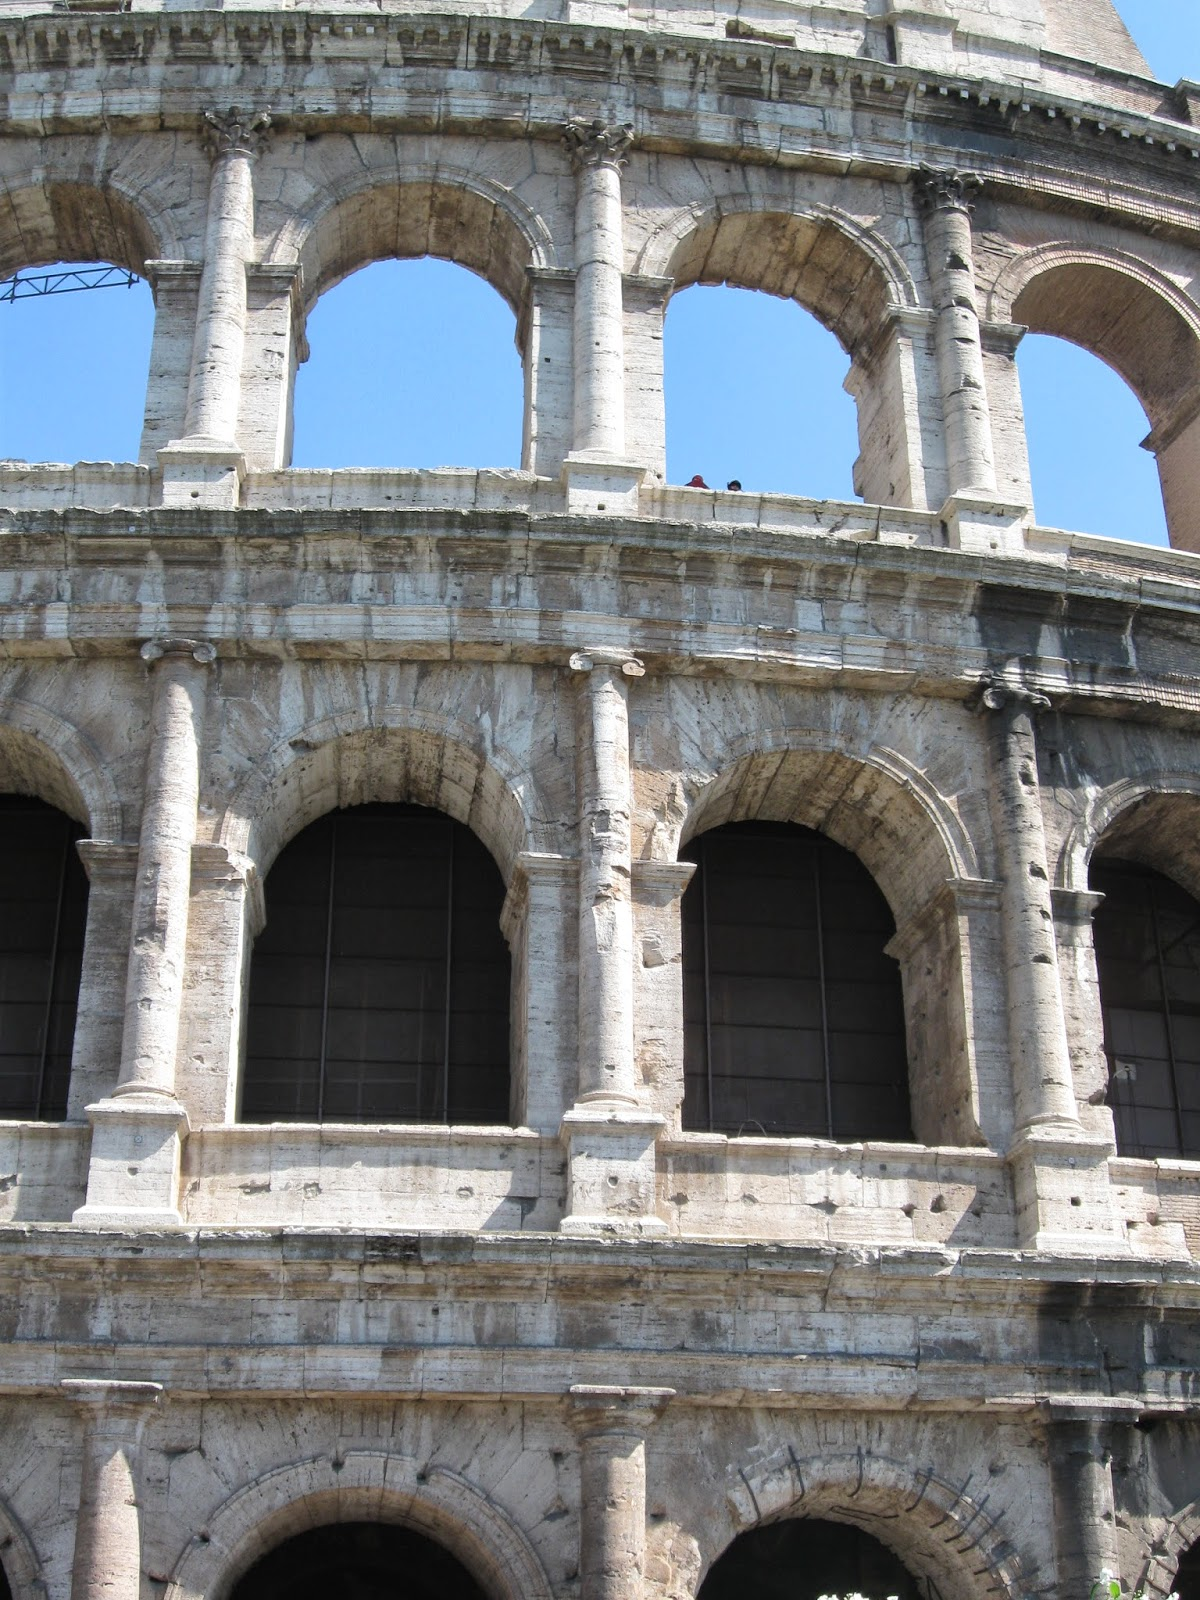 roman architecture essays Ancient roman architecture research papers cover the style of buildings in ancient rome, which may include temples, stadiums, baths and ordinary living quarters.